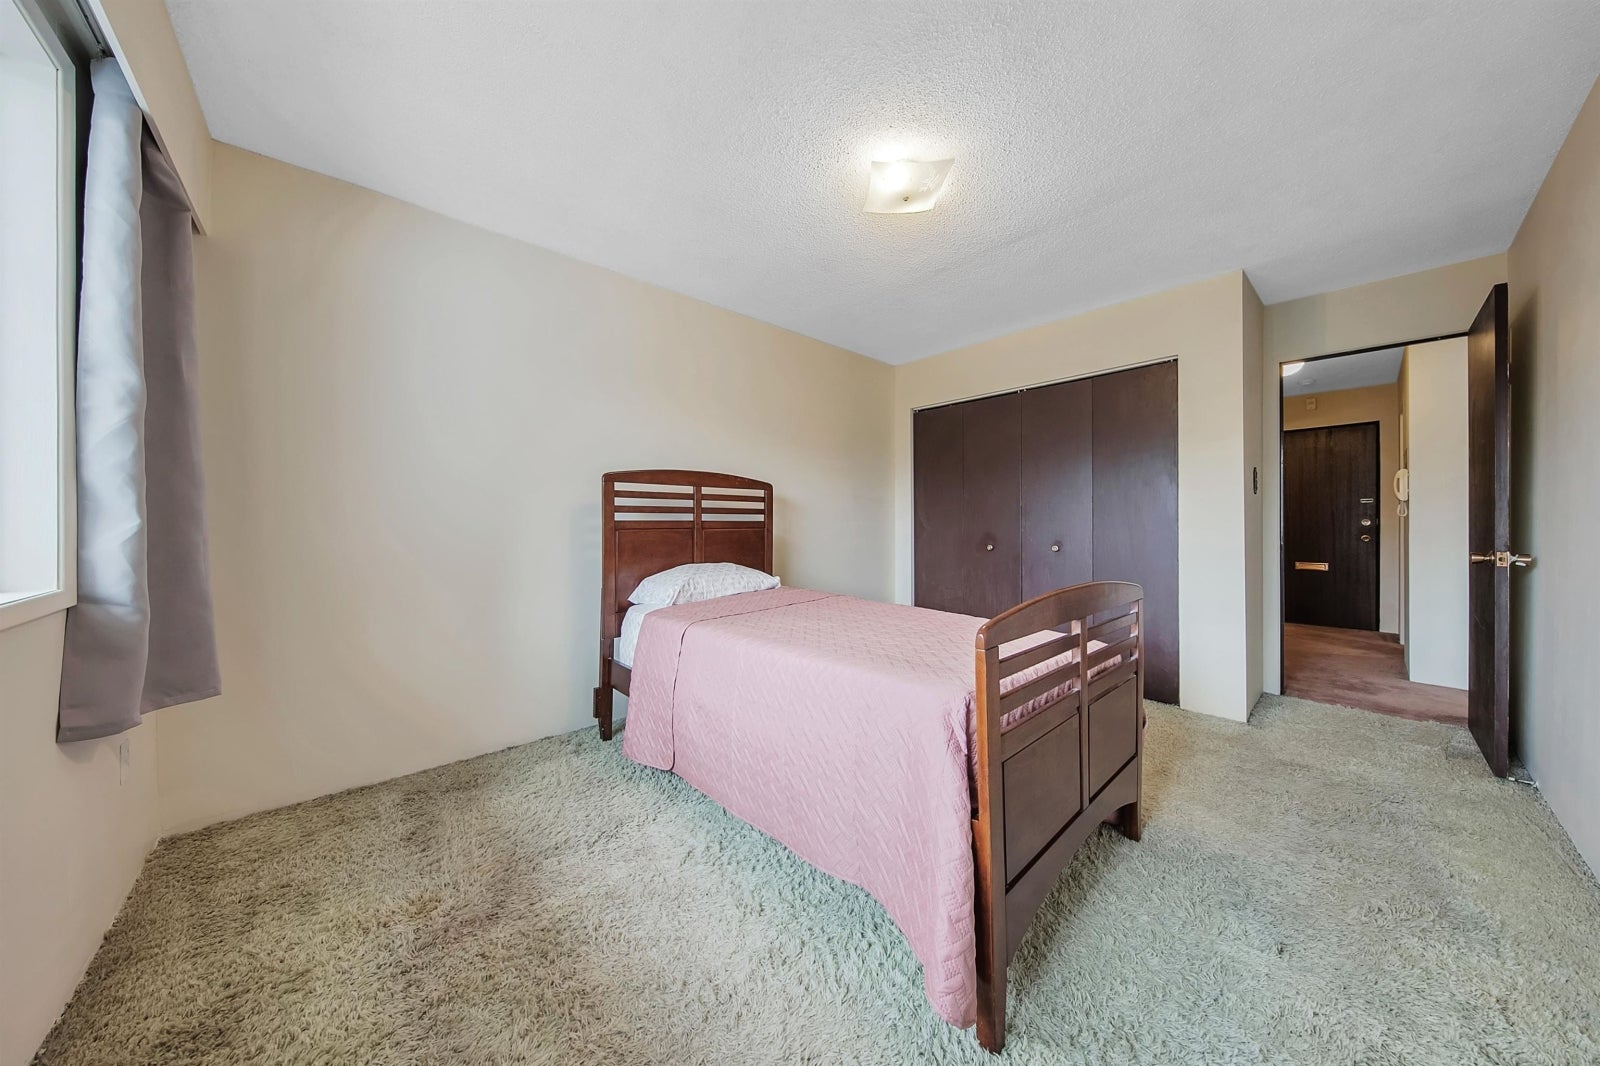 306 1345 CHESTERFIELD AVENUE - Central Lonsdale Apartment/Condo for sale, 1 Bedroom (R2622121) #18